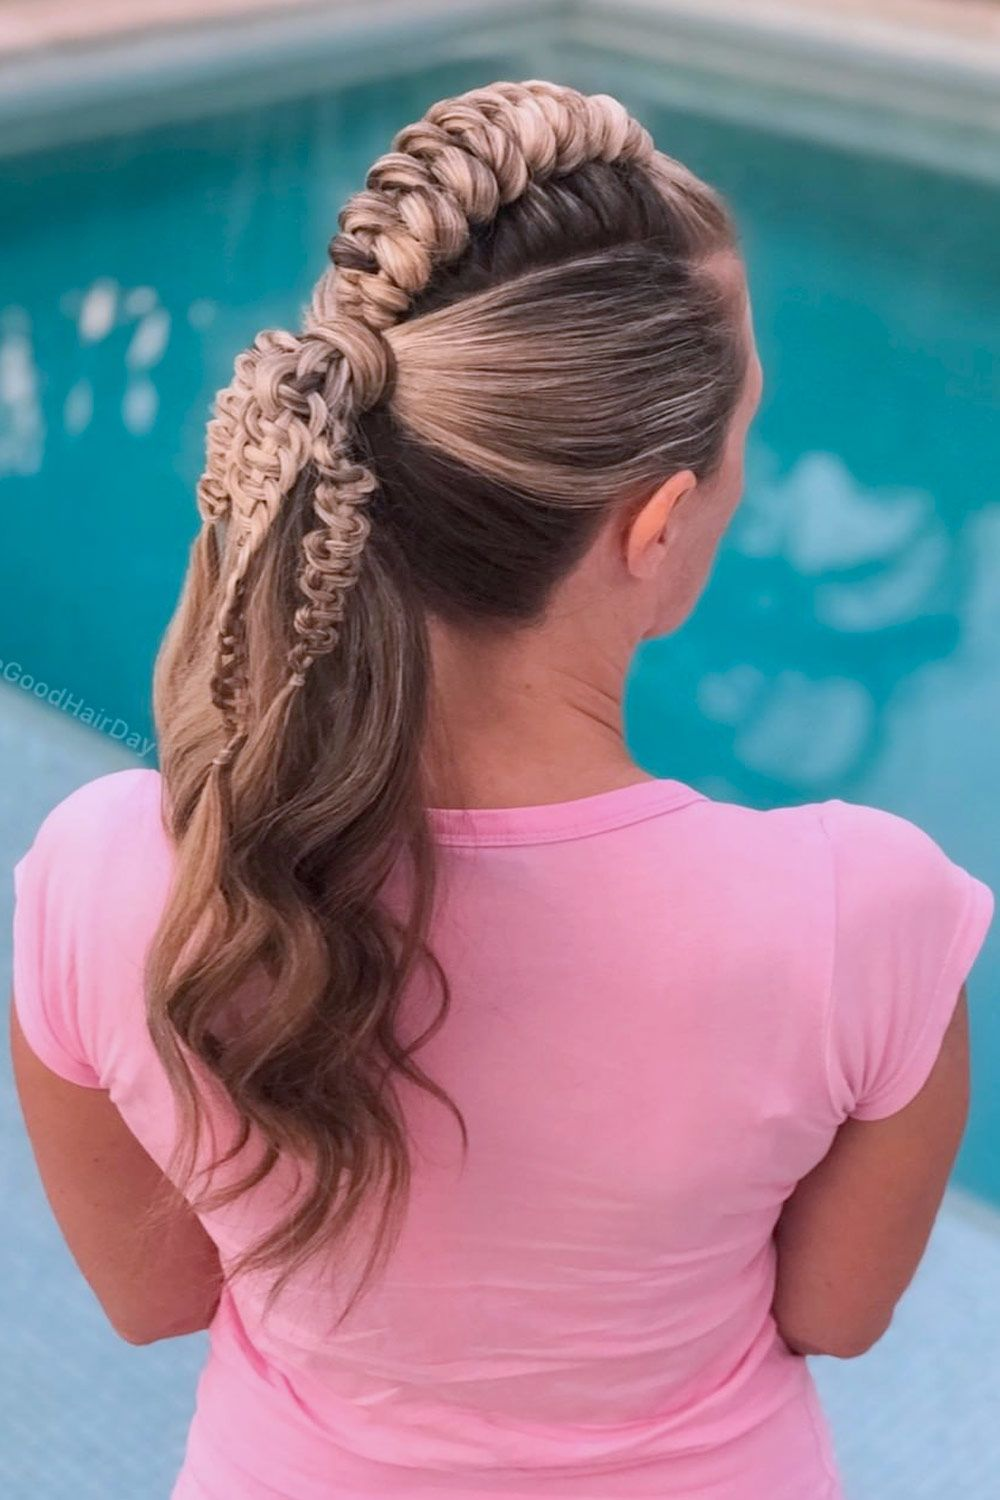 Ponytail With Snake Braid